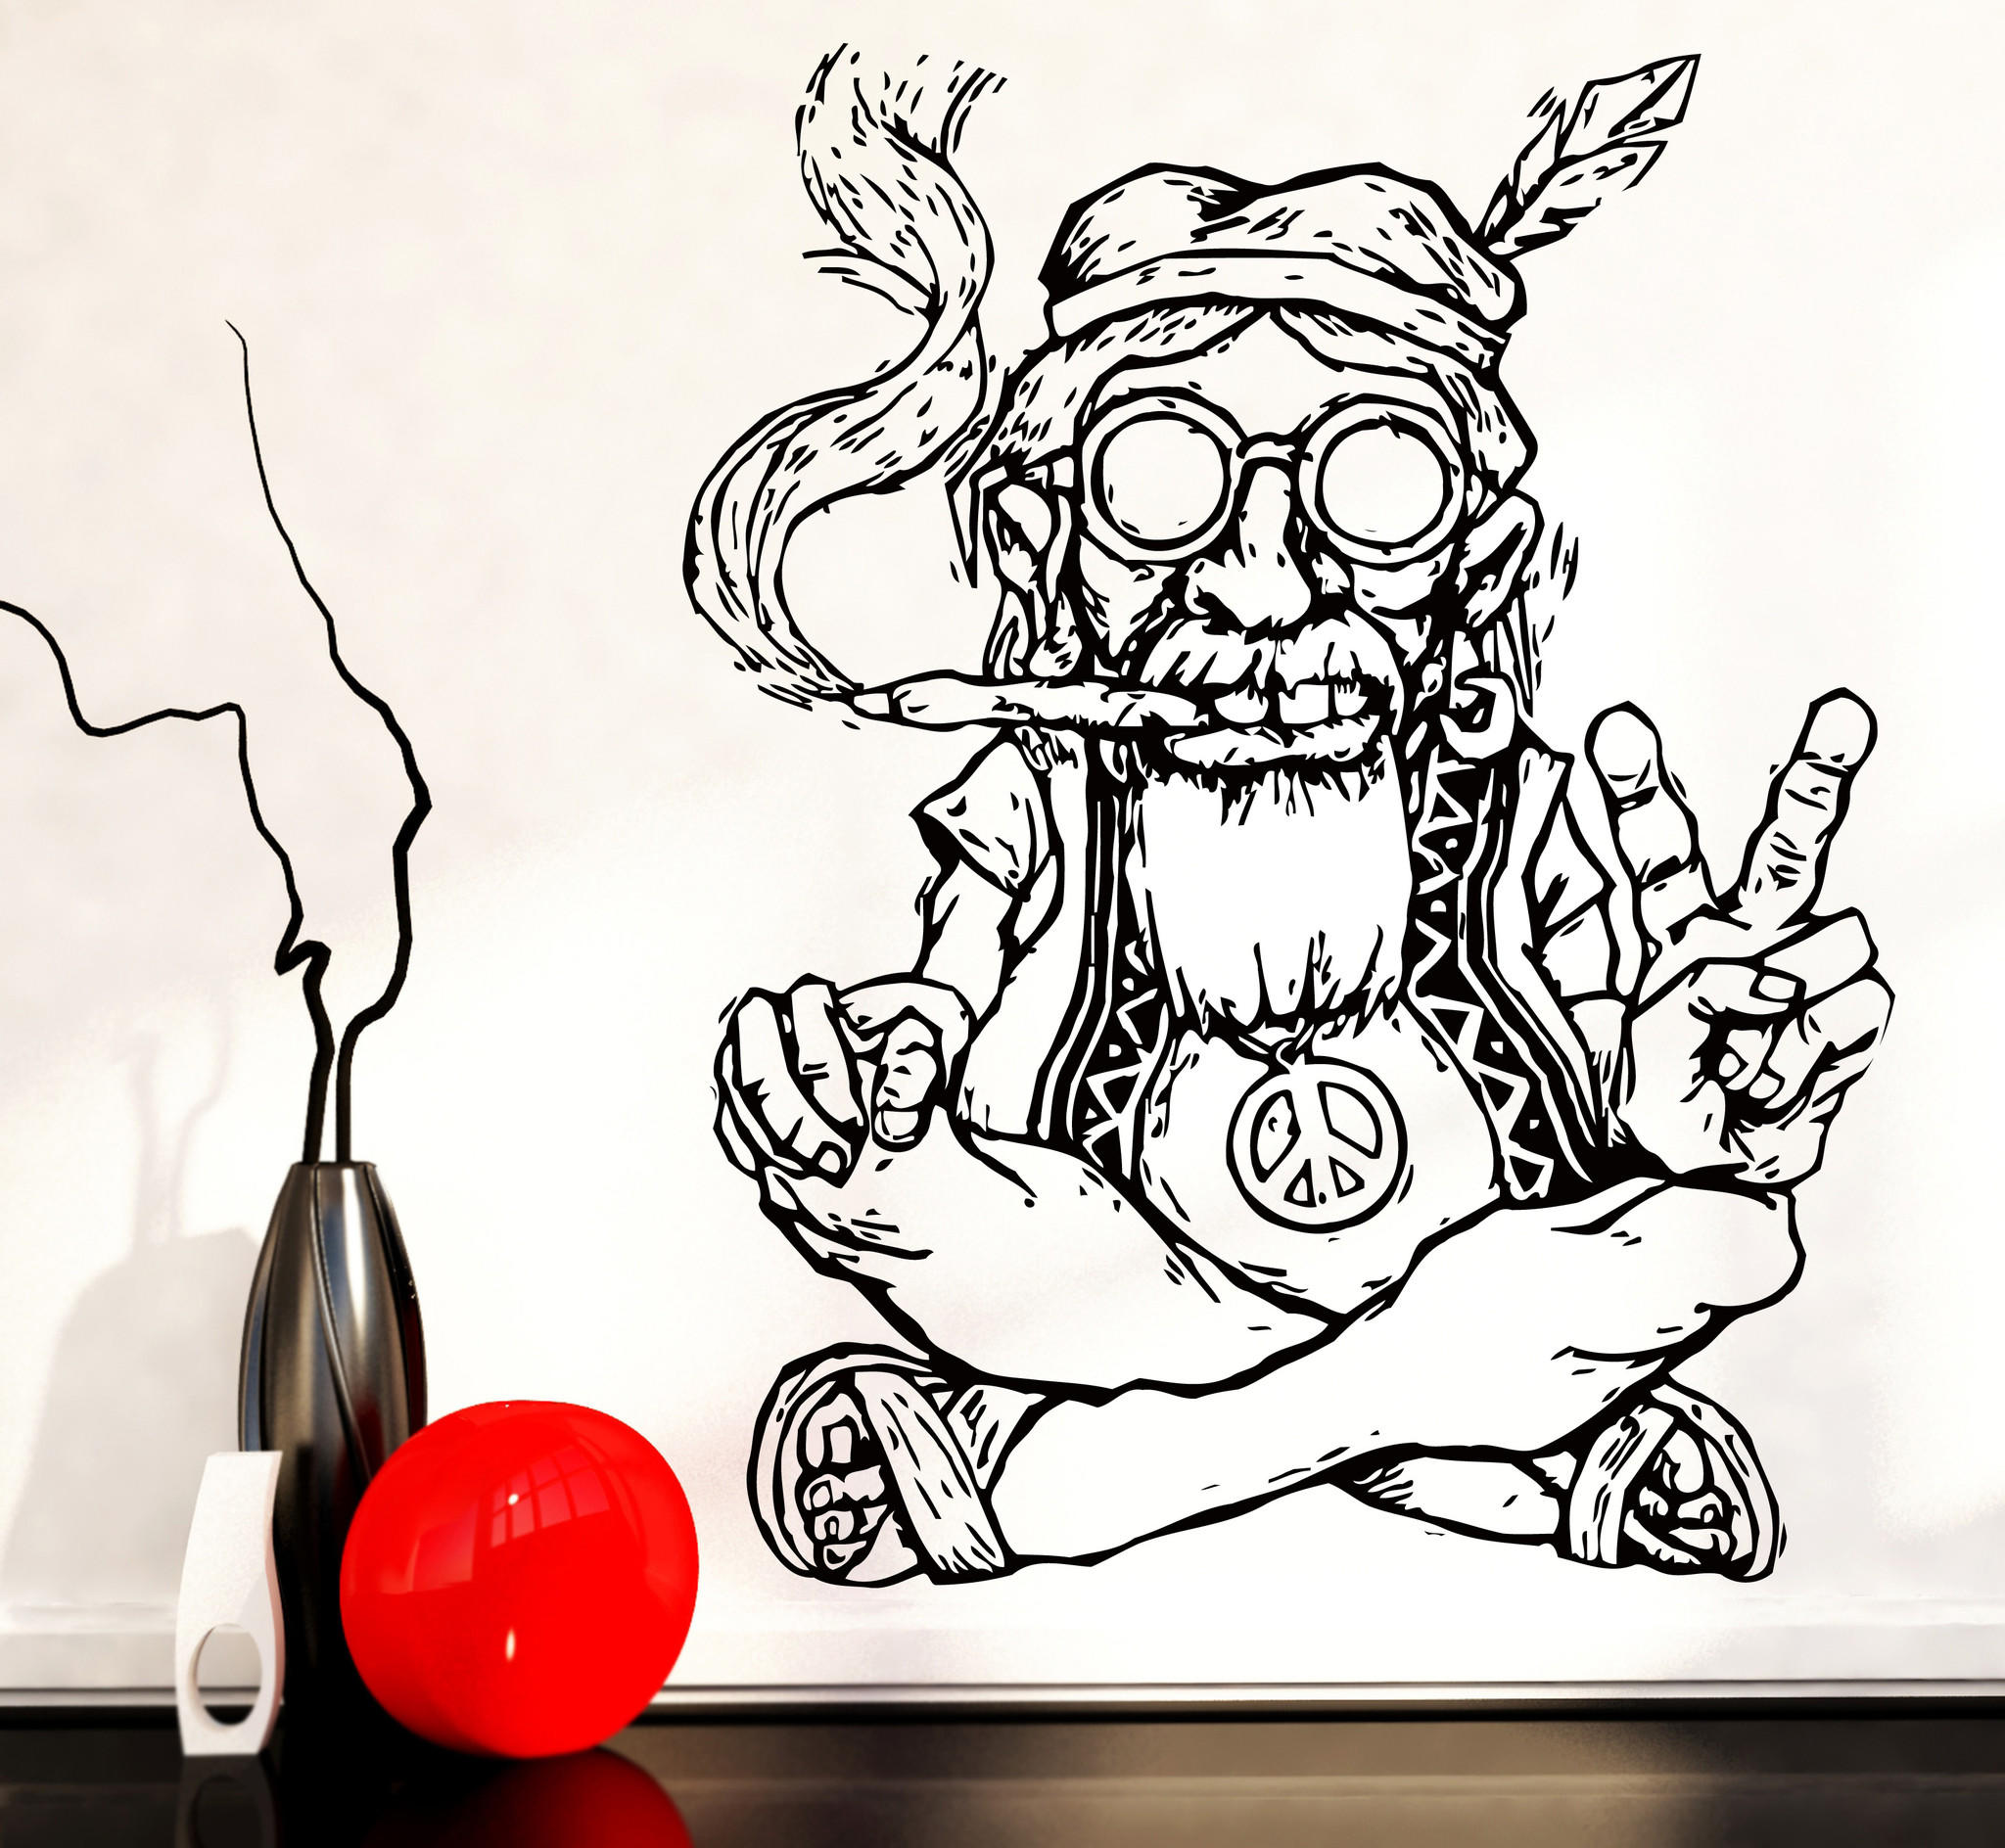 vinyl decal wall sticker hippie in from wallstickers4you love vinyl decal wall sticker hippie in glasses smoking weed marijuana peace symbol ethnic